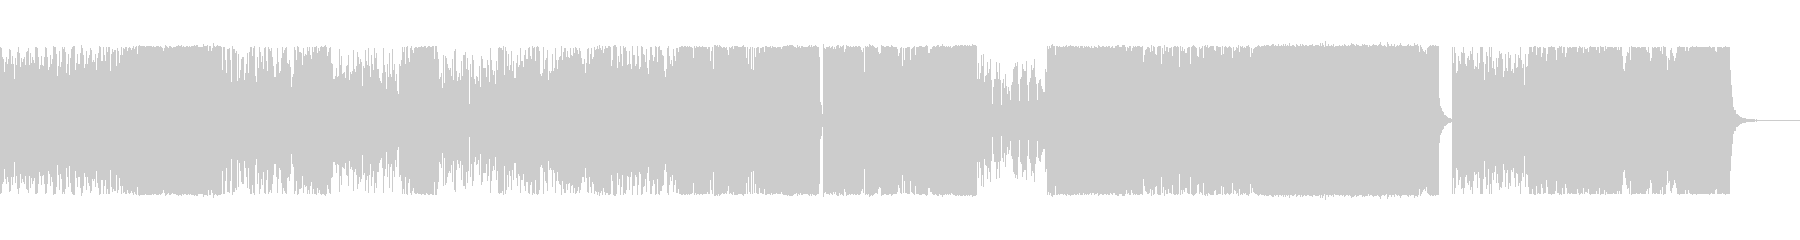 Positive, magnificent and gorgeous ending song's unreproduced waveform